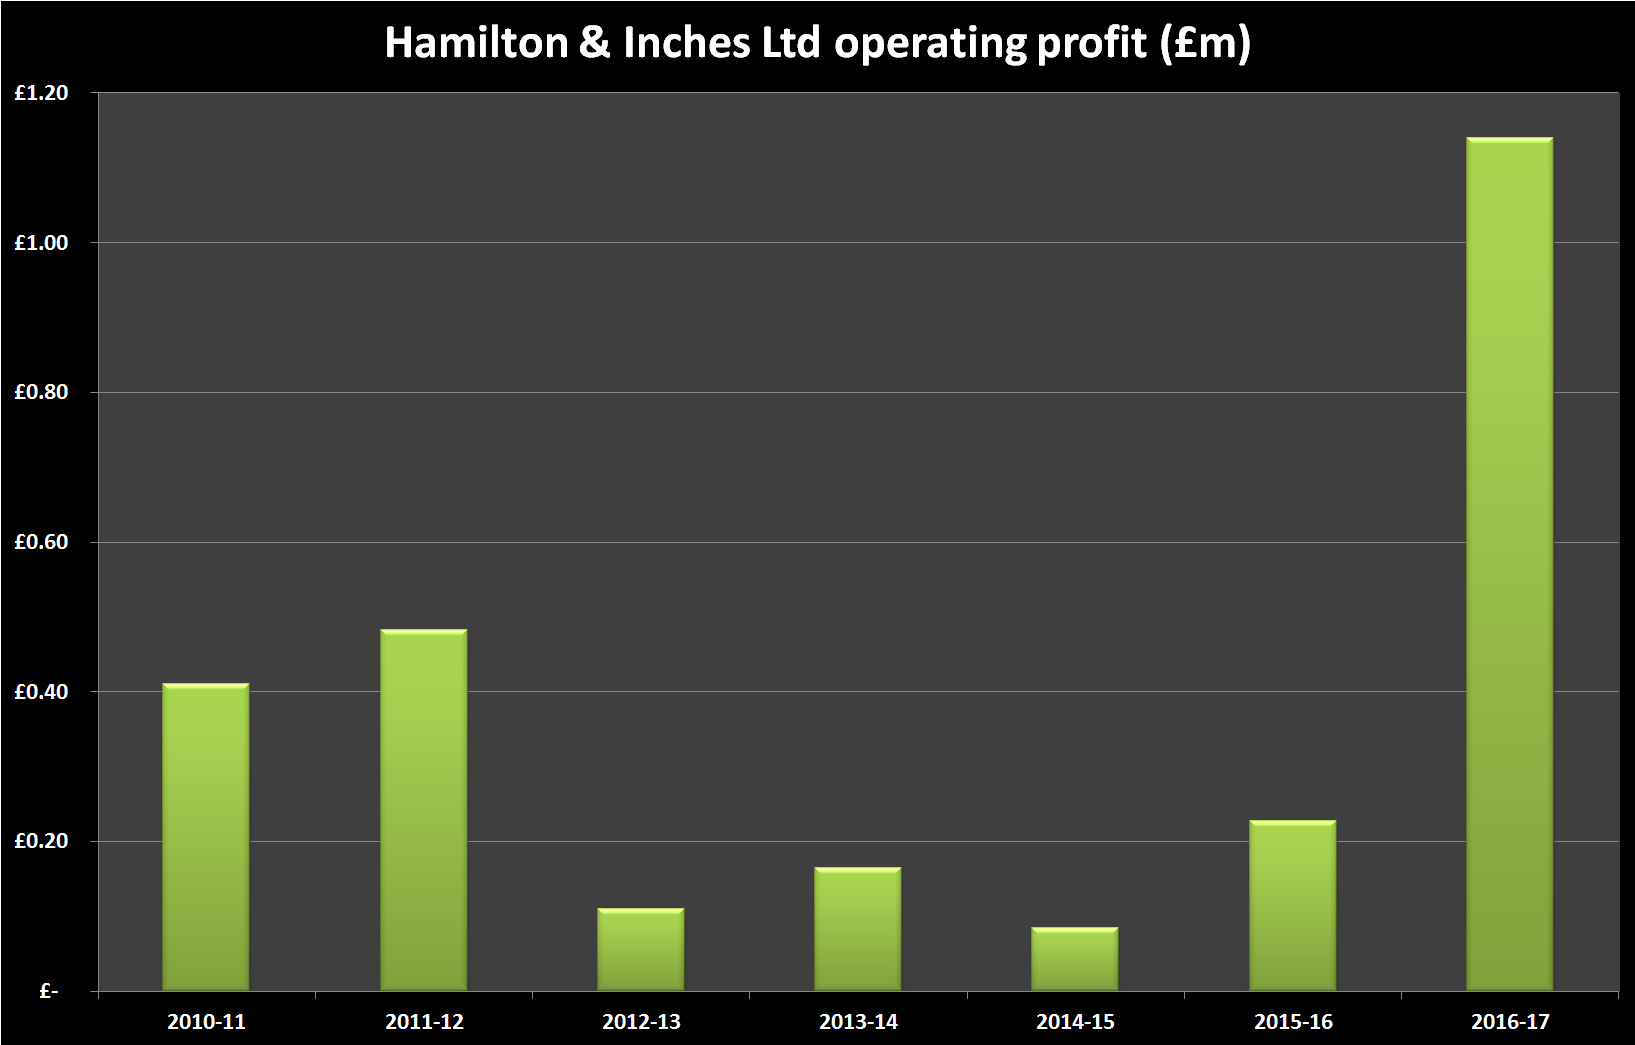 Hamilton & Inches Financial History - operating profit